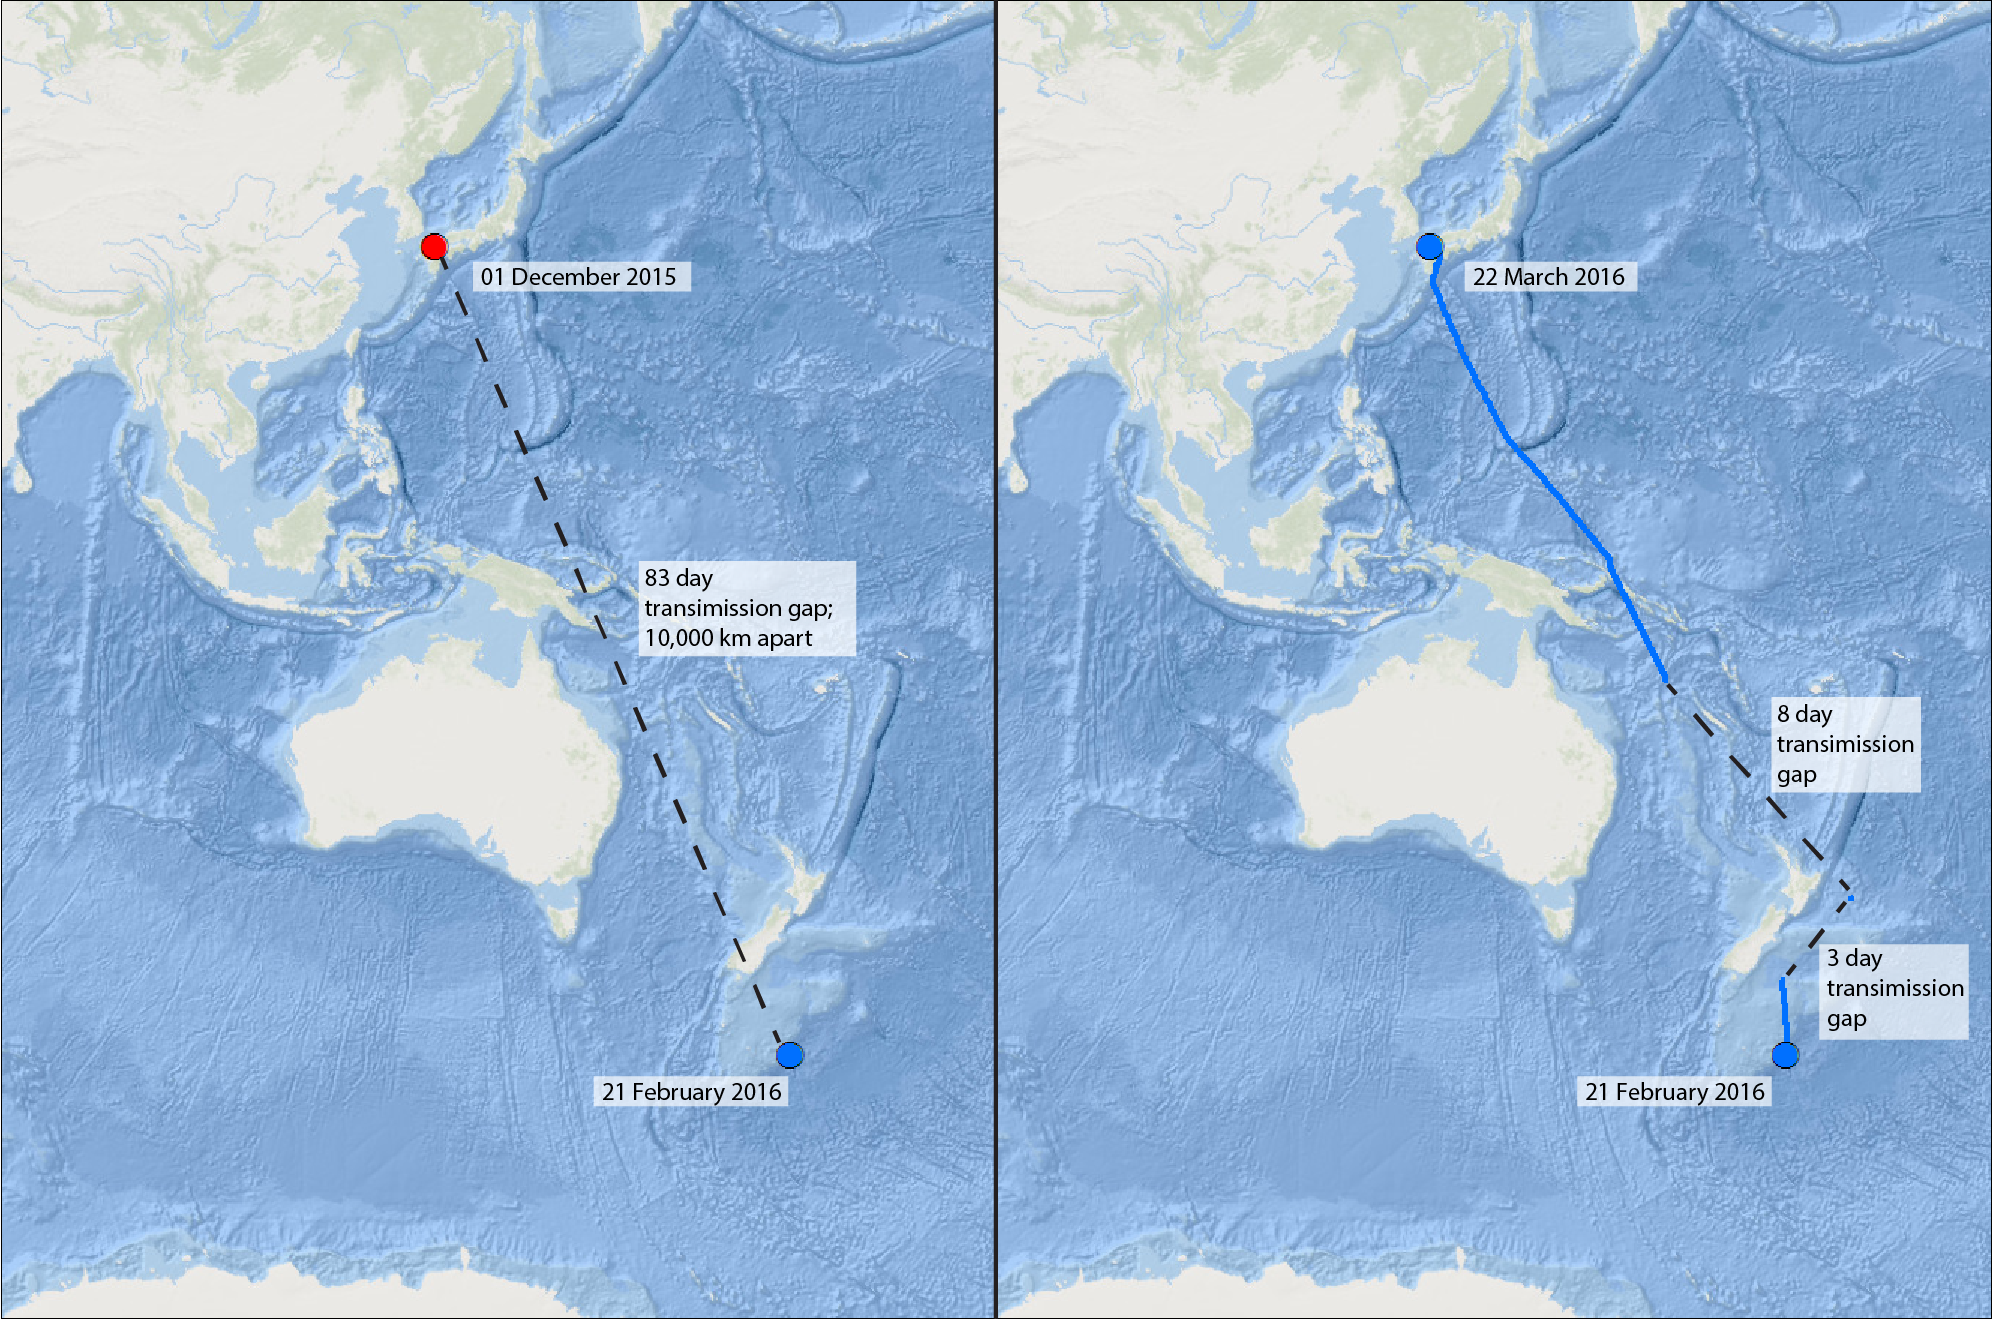 AIS vessel locations of the Shonan Maru No. 2, a known whaling vessel. The first panel shows the time and distance between the two transmitted locations on 01 December 2015 and 21 February 2016. This gap coincides with the Antarctic whaling season. The second panel shows the Shonan Maru No. 2 heading back to Japan after the 2015/2016 season.